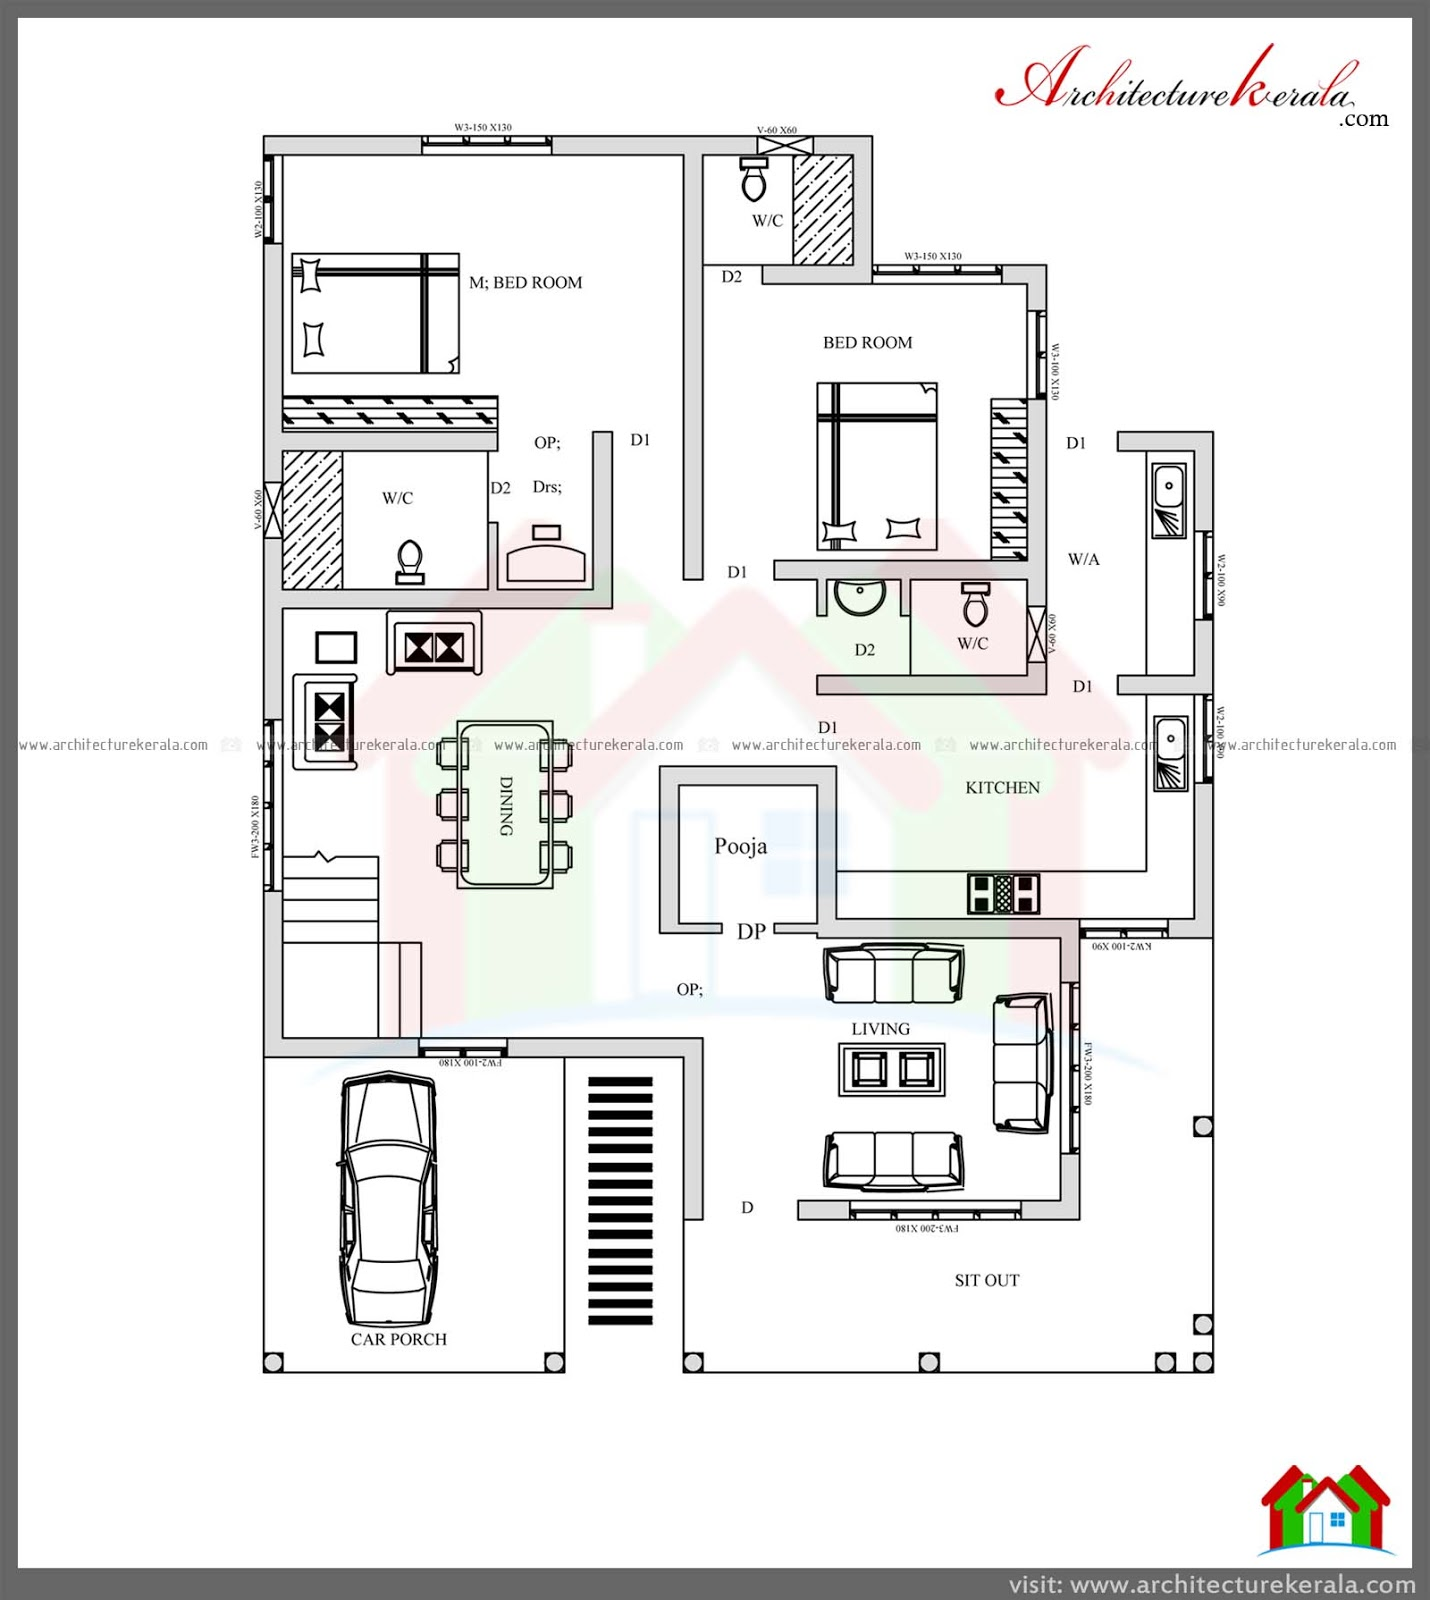 Stunning 4 bedroom kerala home design with pooja room free for Kerala style house plans with photos